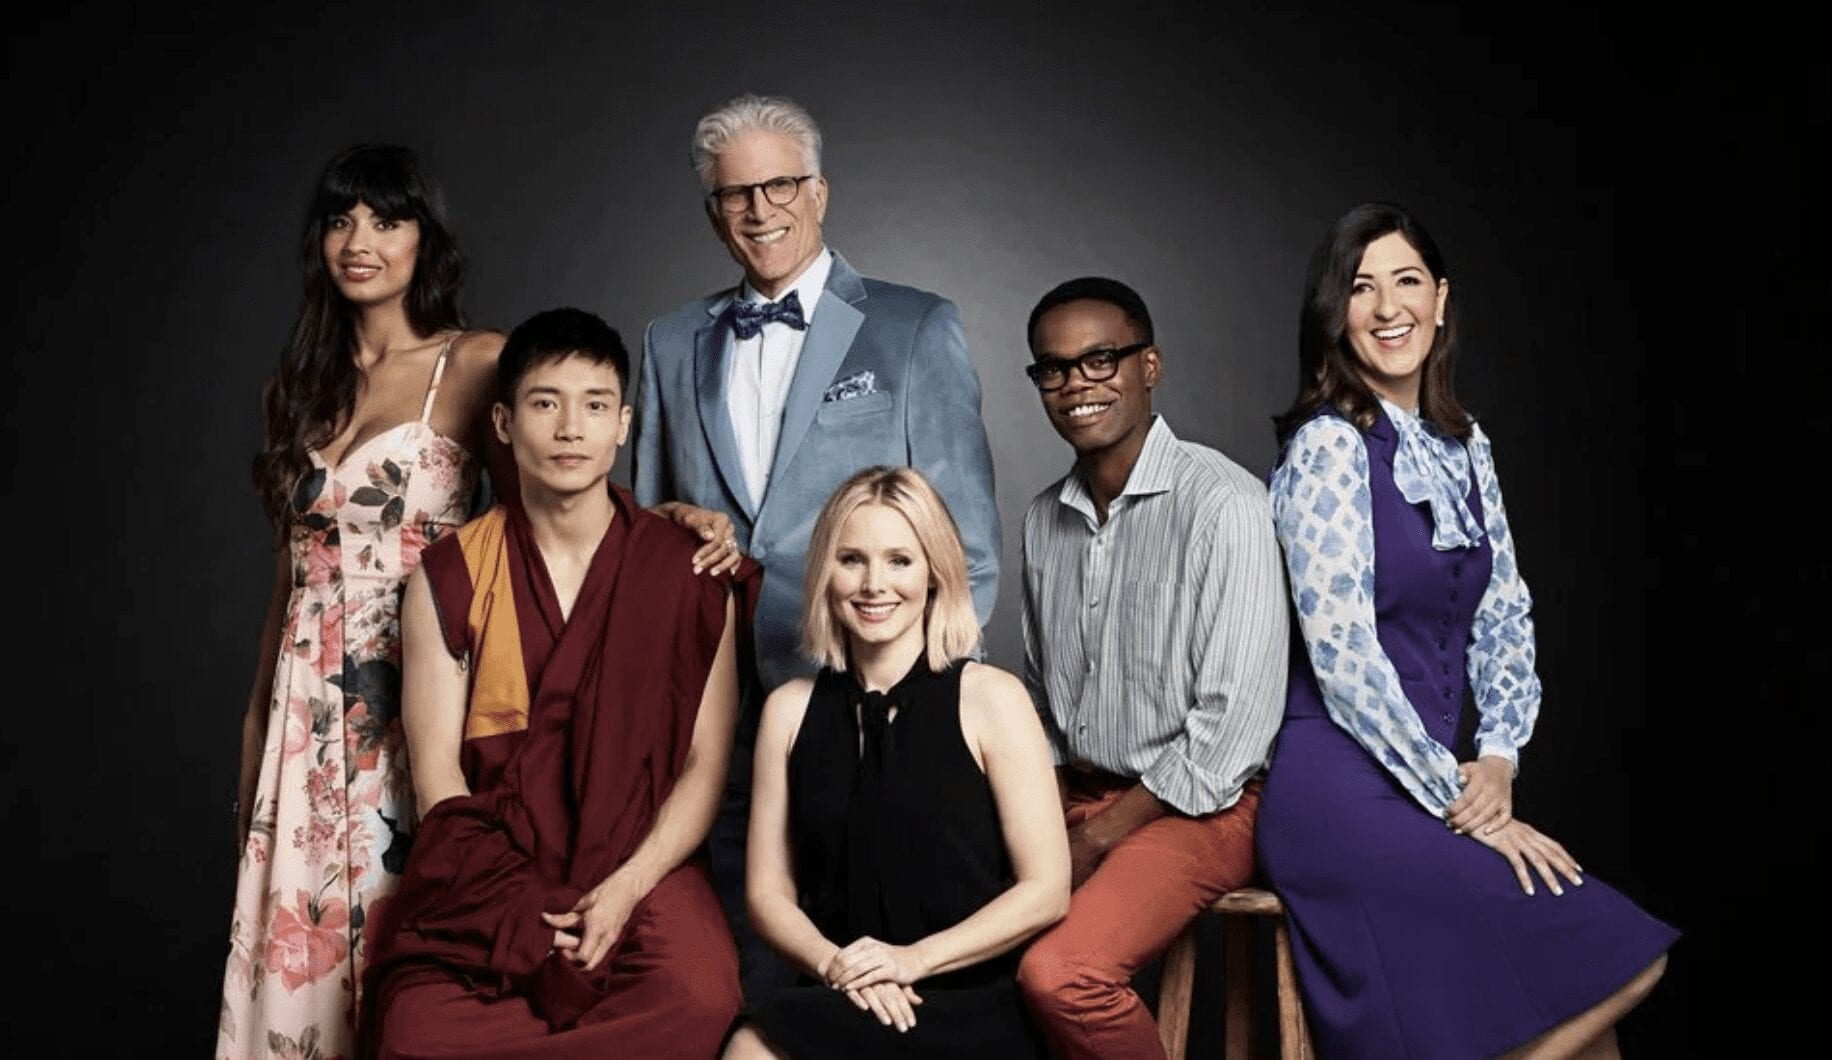 Top TV of the Decade: The Good Place